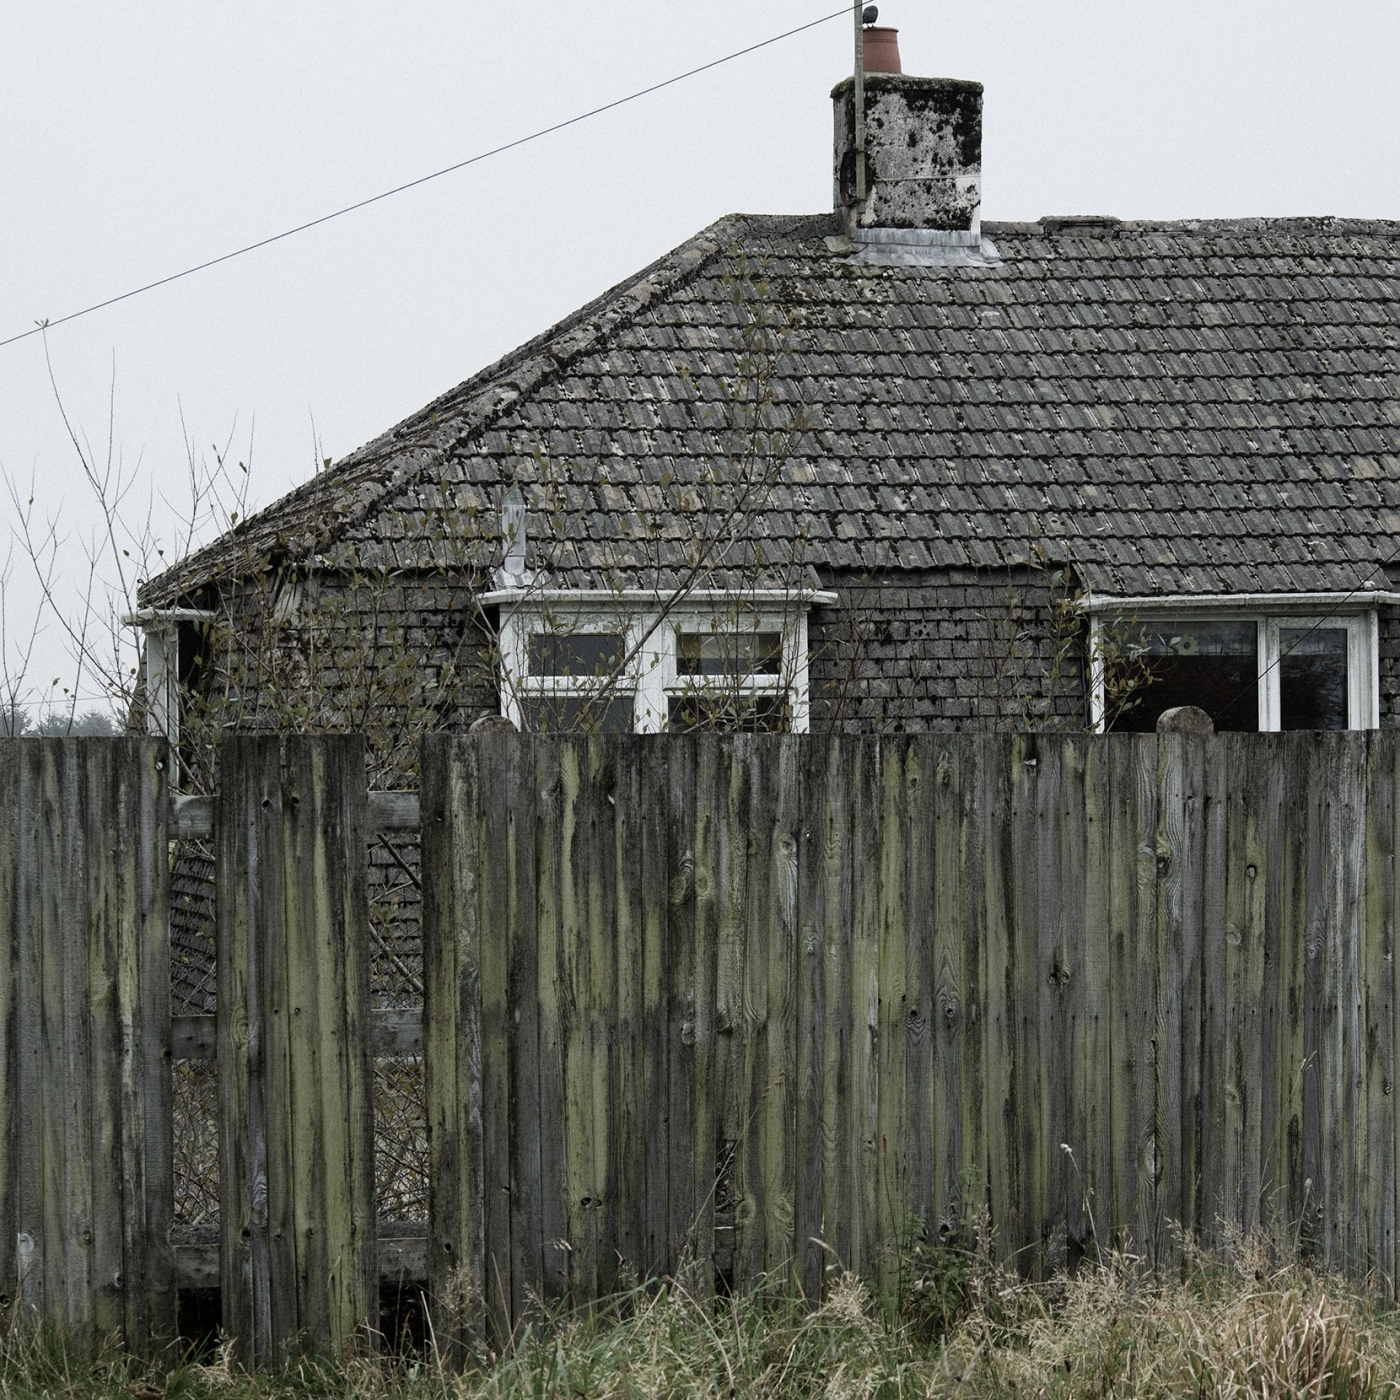 The Cornish Unit - missing fence posts just add to the feel... a riot of texture